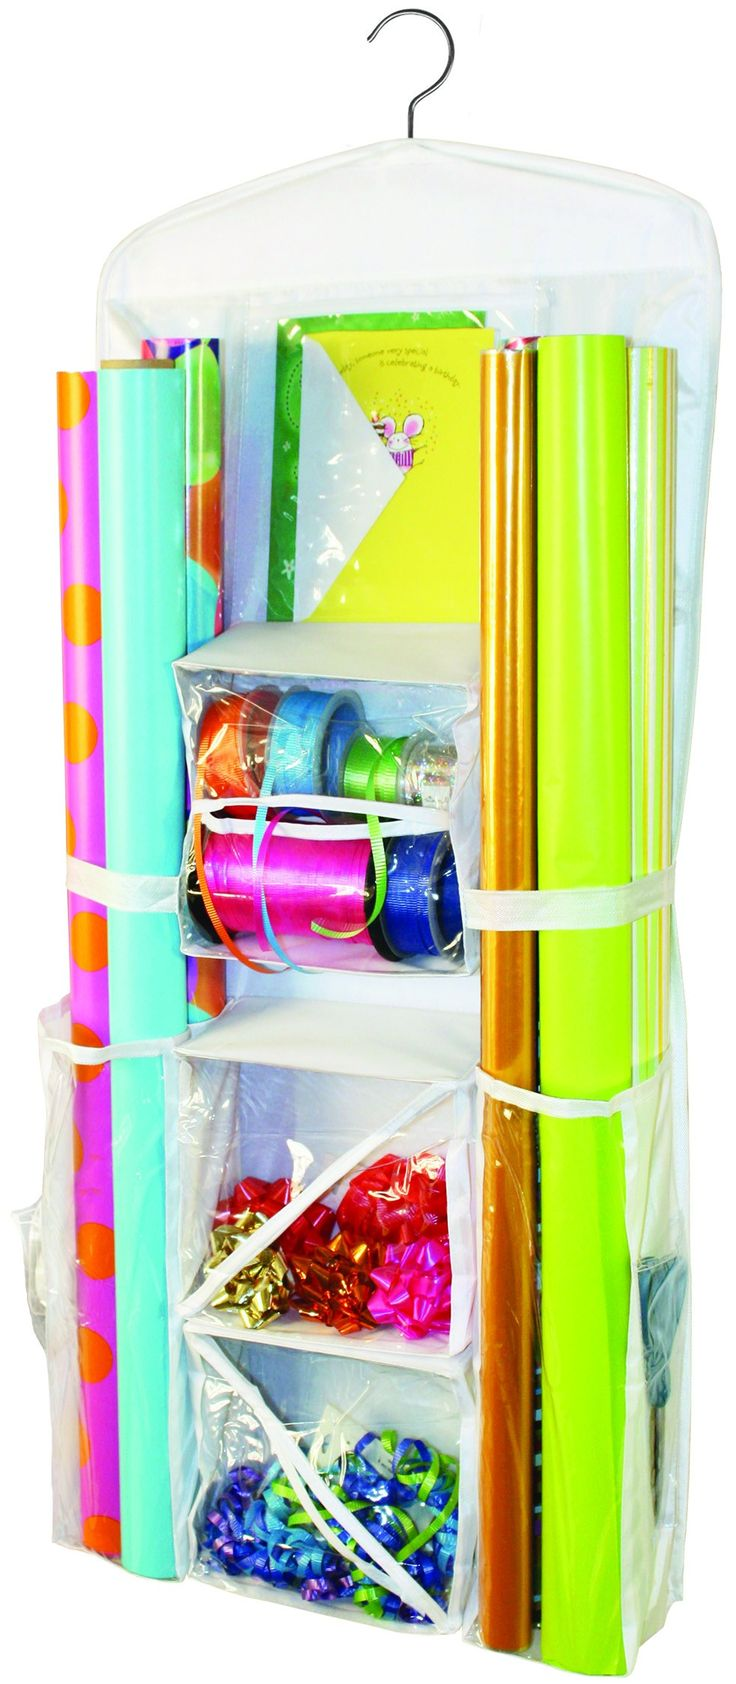 Get ready to celebrate! This gift wrap organizer features pockets on both sides to conveniently store wrapping paper, ribbon, bows, cards, tissue paper, scissors, tape, gift bags, gift boxes, and more. Now you can buy wrapping paper inexpensively at the end of the season, store it and be ready for occasions all year long! The organizer has a hook for easy hanging from a closet rod.